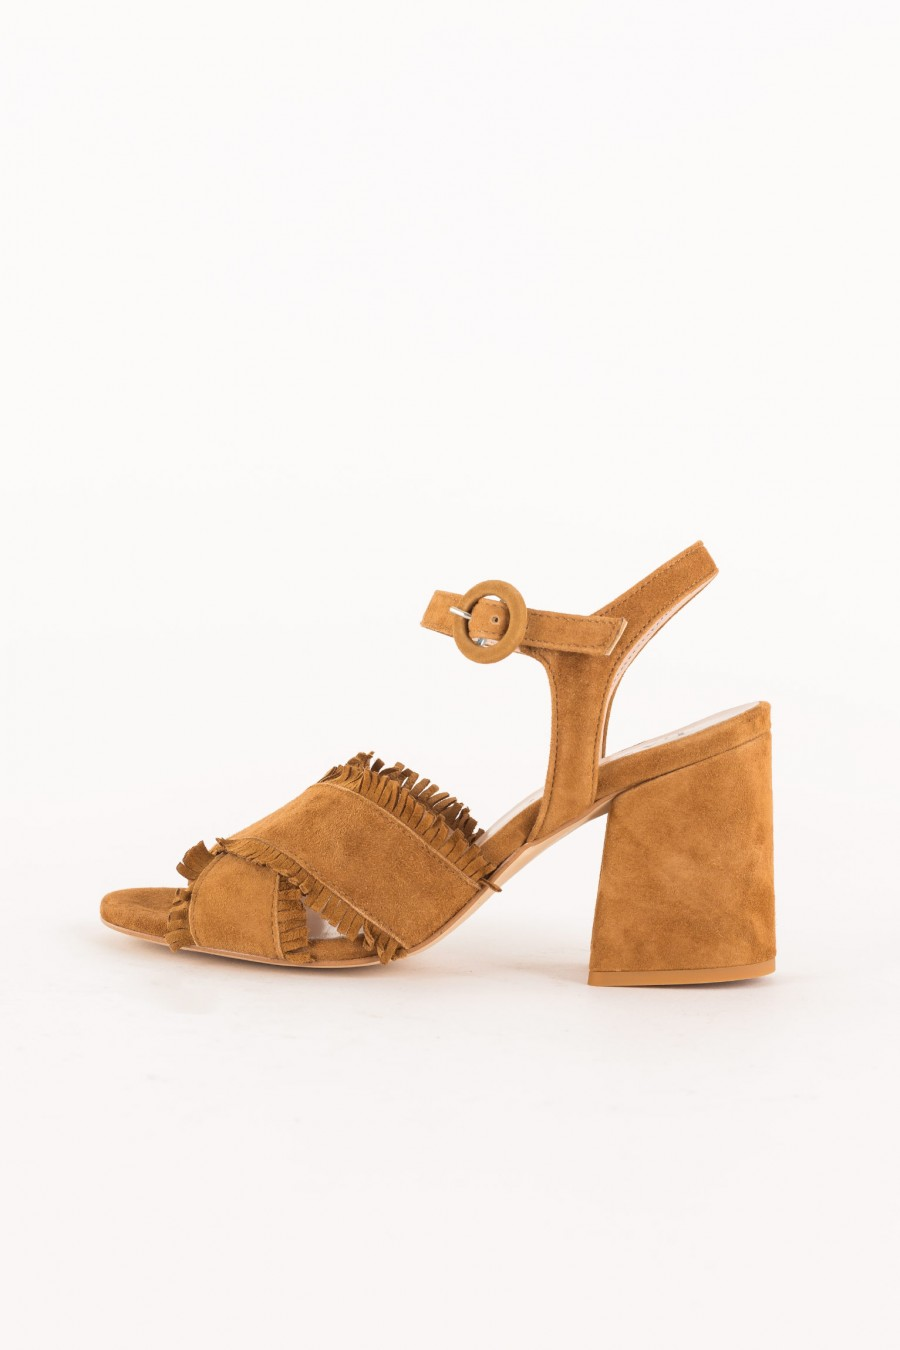 leather-colored sandal